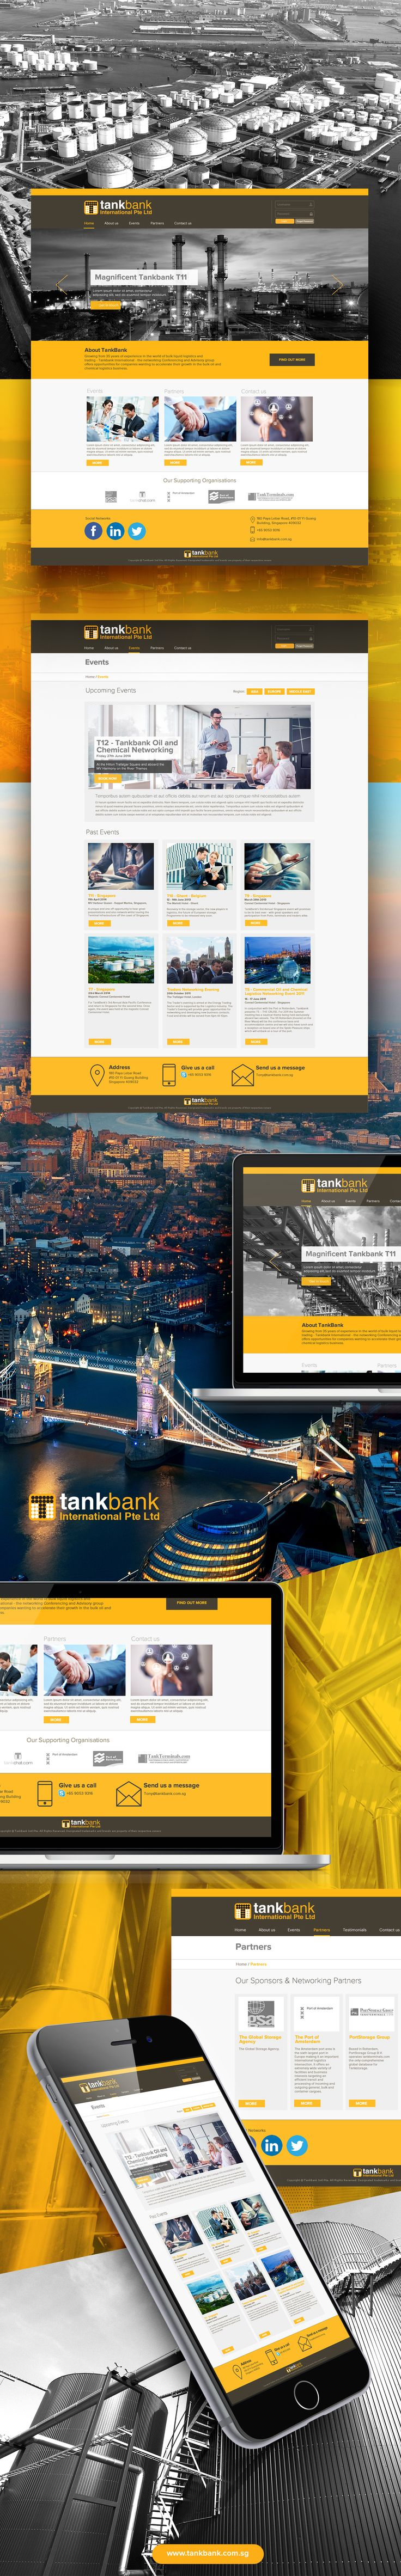 TankBank international website design Growing from over 40 years of experience in the world of bulk liquid logistics and trading – Tankbank International – the networking Conferencing and Advisory group offers opportunities for companies wanting to accelerate their growth in the bulk oil and chemical logistics business.  #website #web #oil #business #tankbank #yellow #brown #networking #oilgas #chemical #conference #sg #singapore